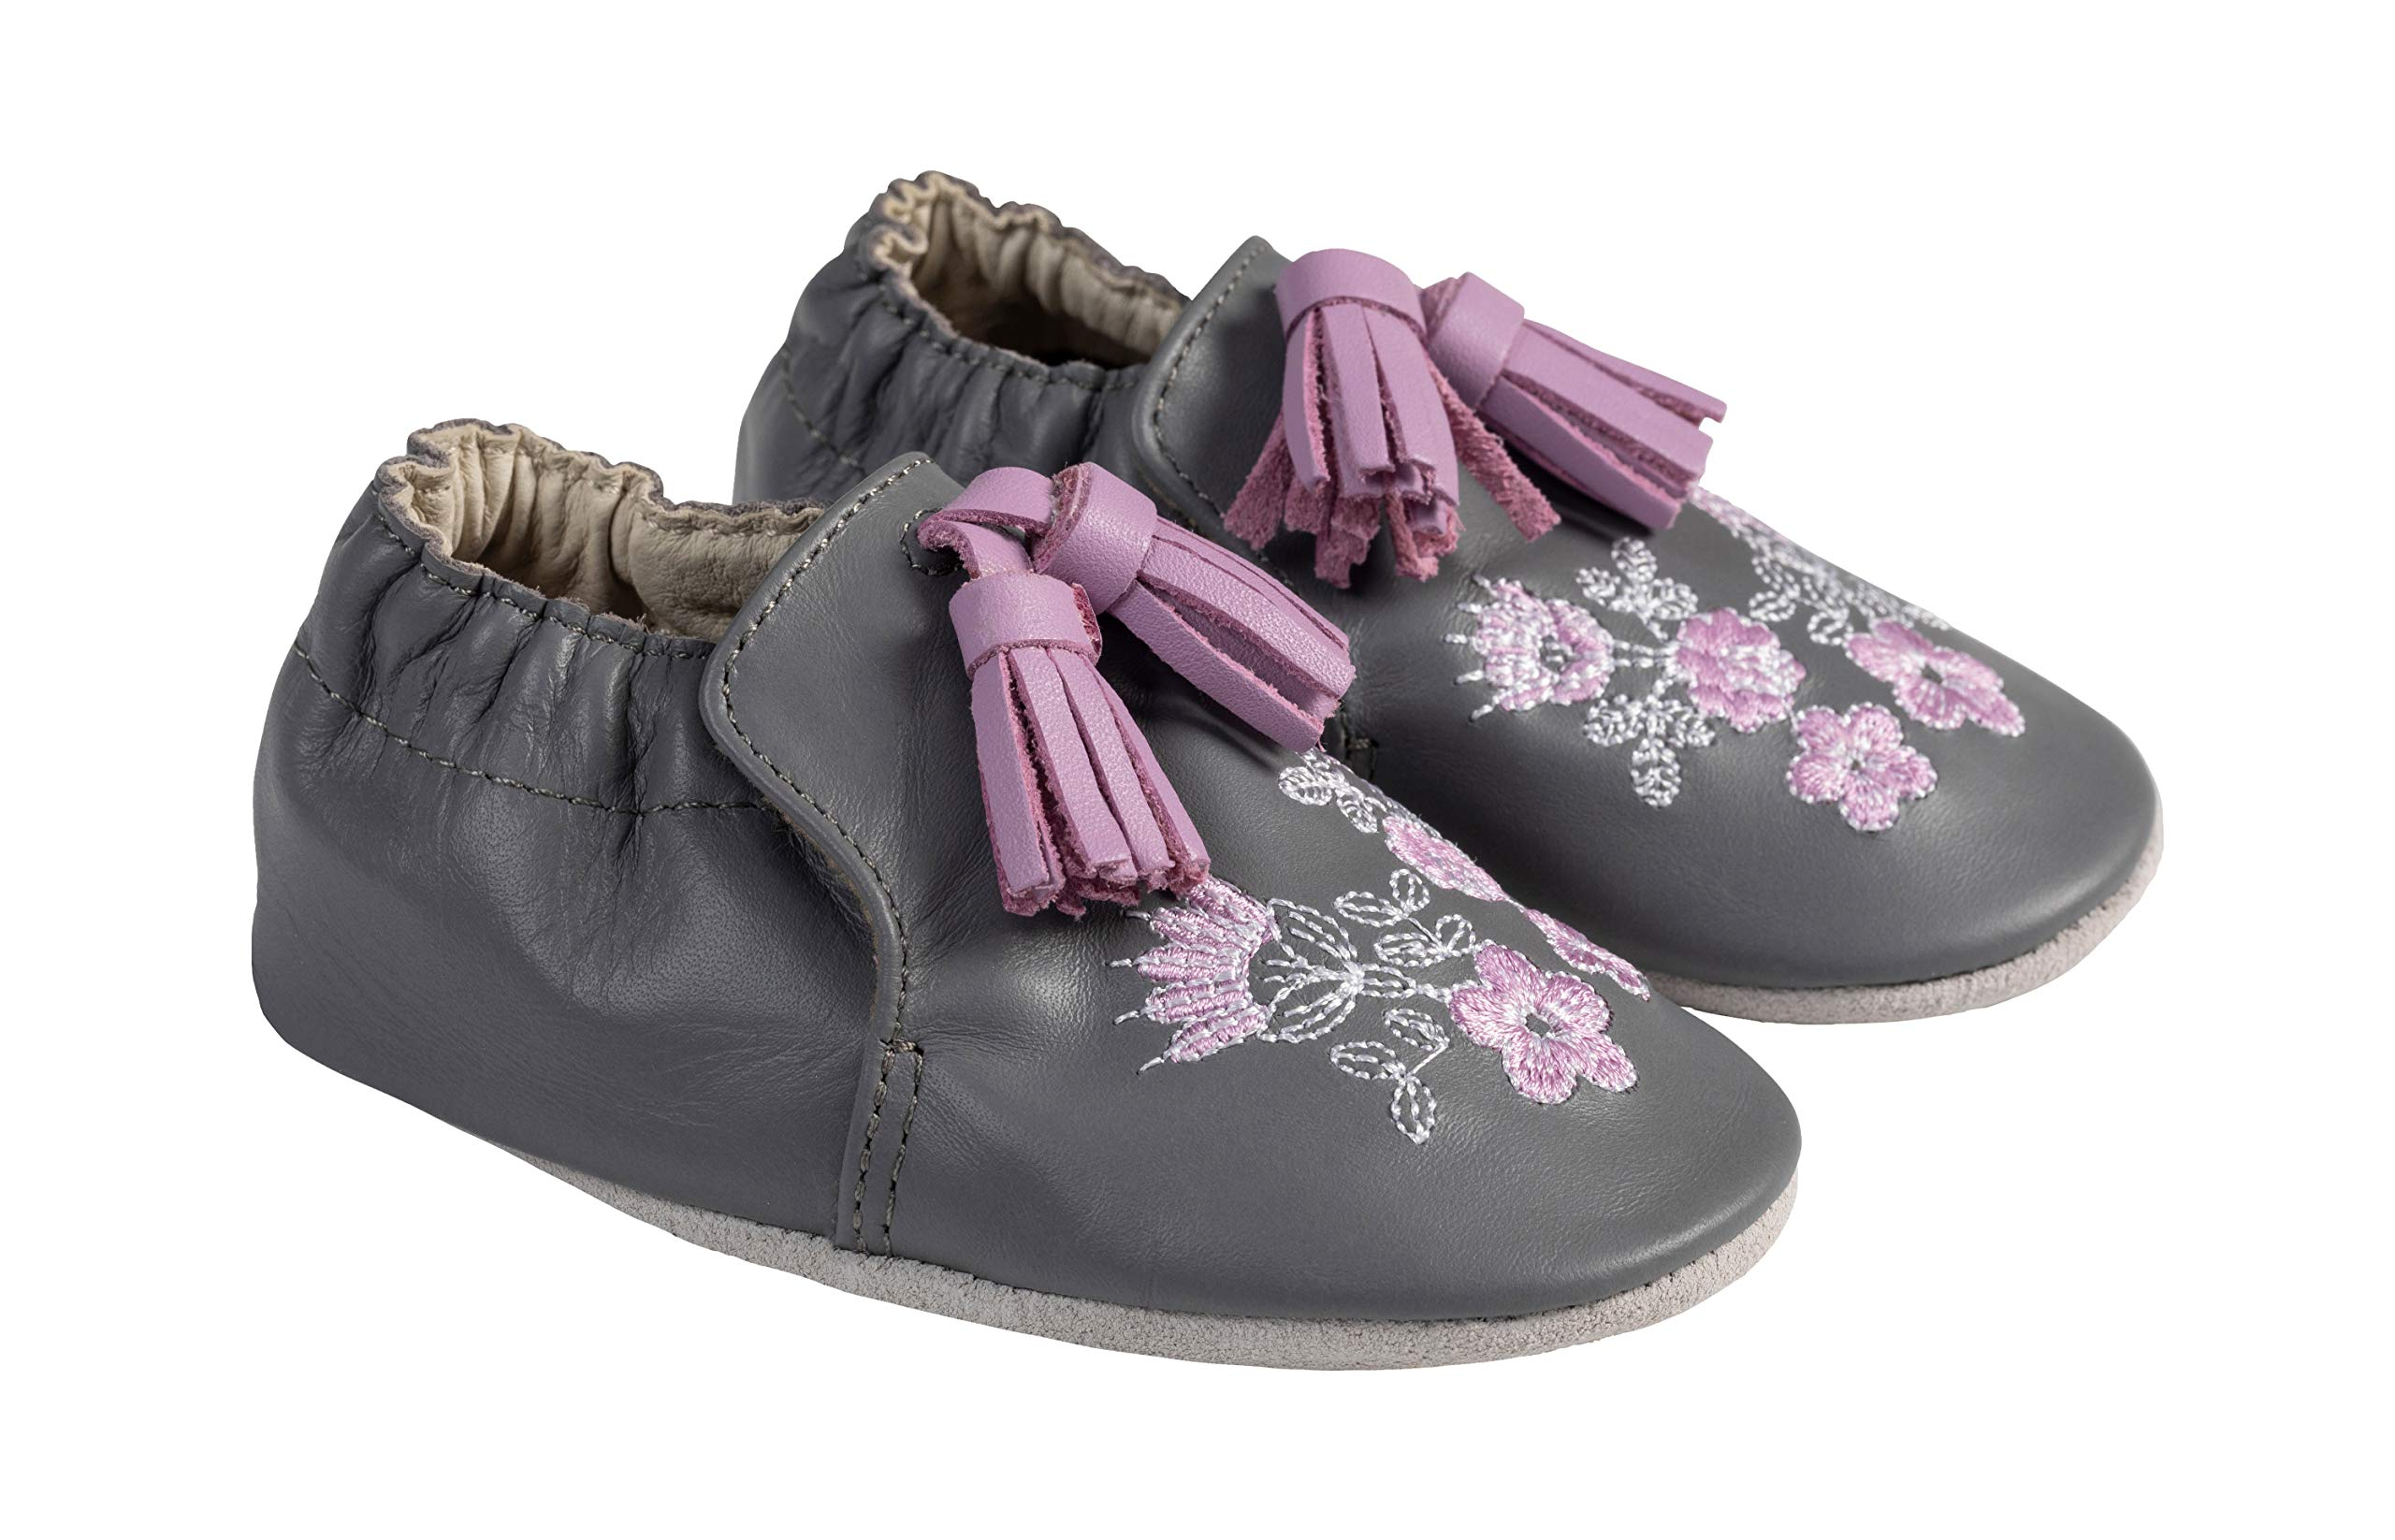 Robeez Soft Sole Baby Shoes for Girls